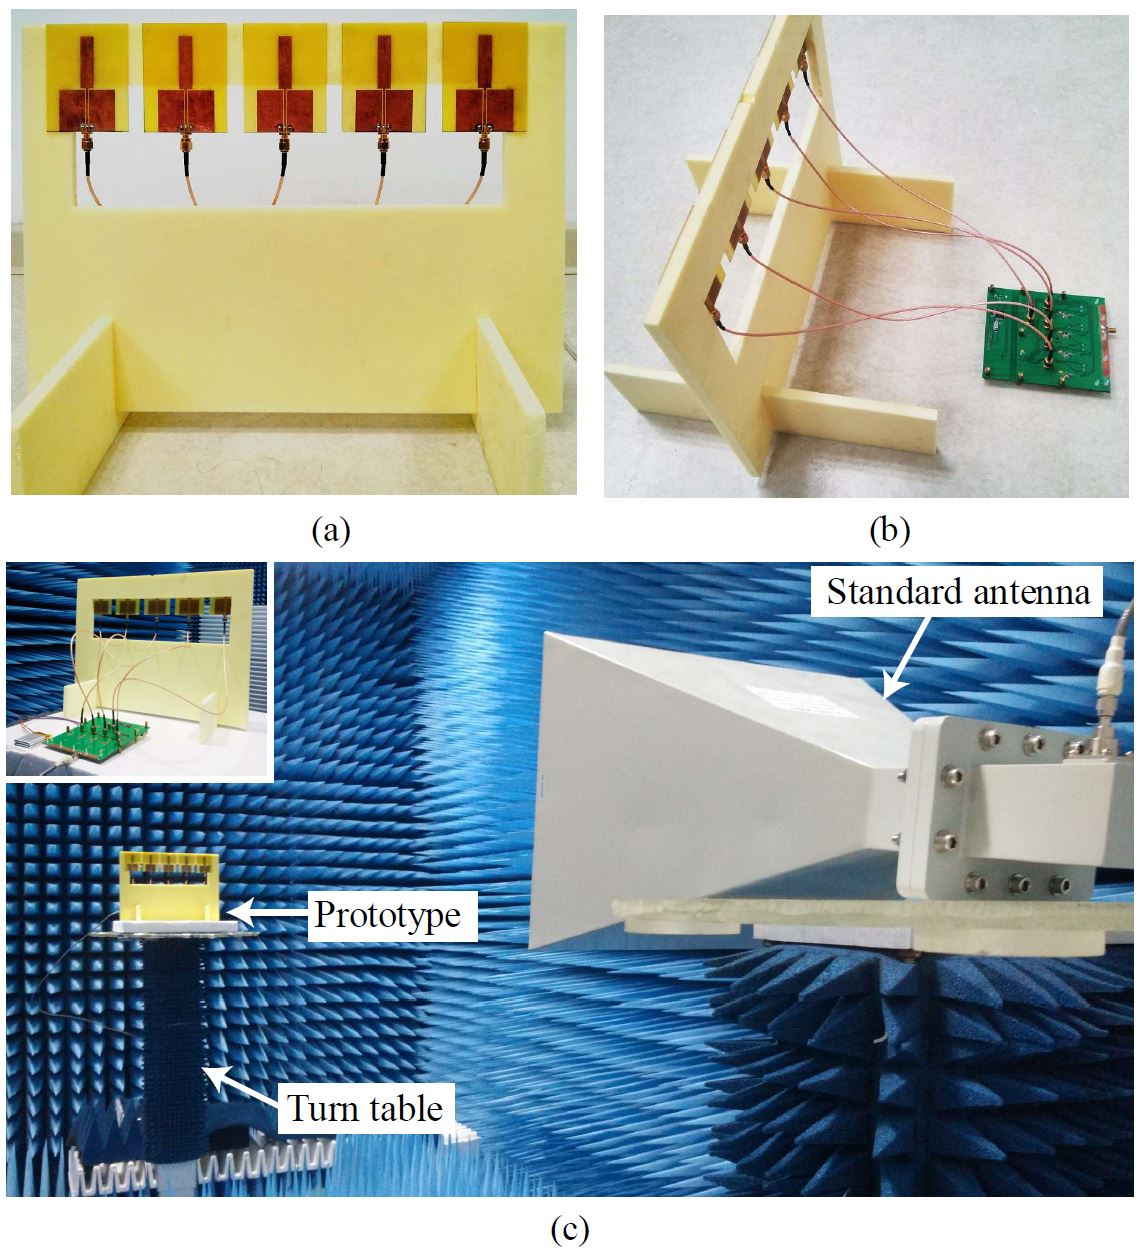 Fig. 2. (a) Five-element linear array. (b) The connection between the linear array and the RF frontend. (c) Experimental setup in the microwave anechoic chamber. Inset shows the prototype powered by a Li-ion battery